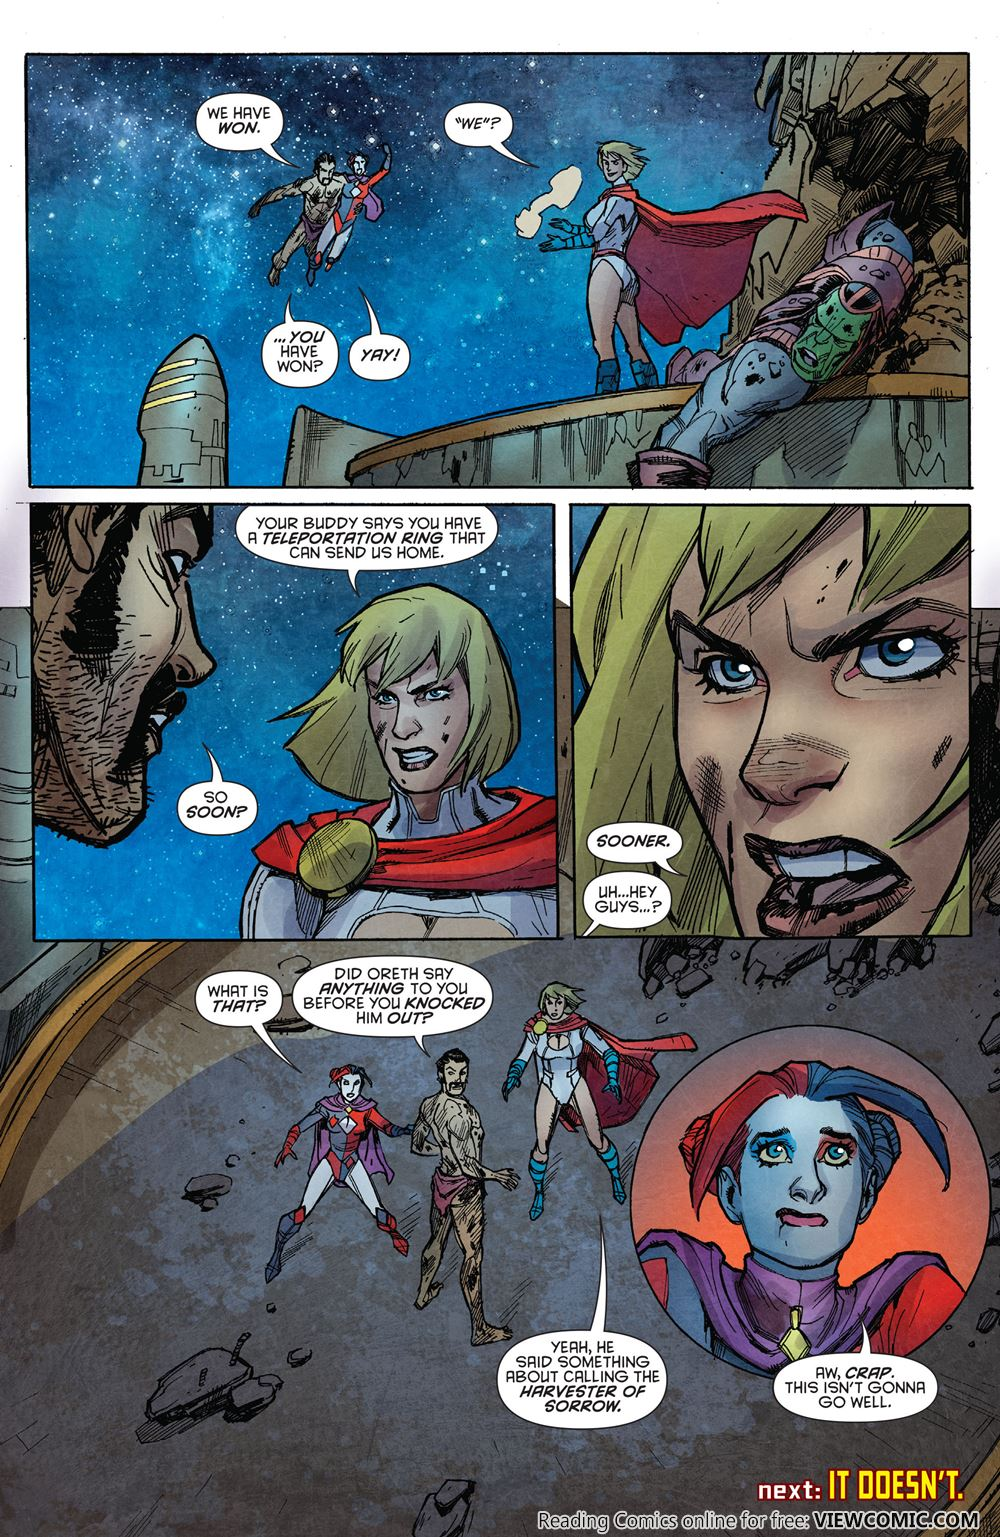 harley quinn and power girl viewcomic reading comics online for